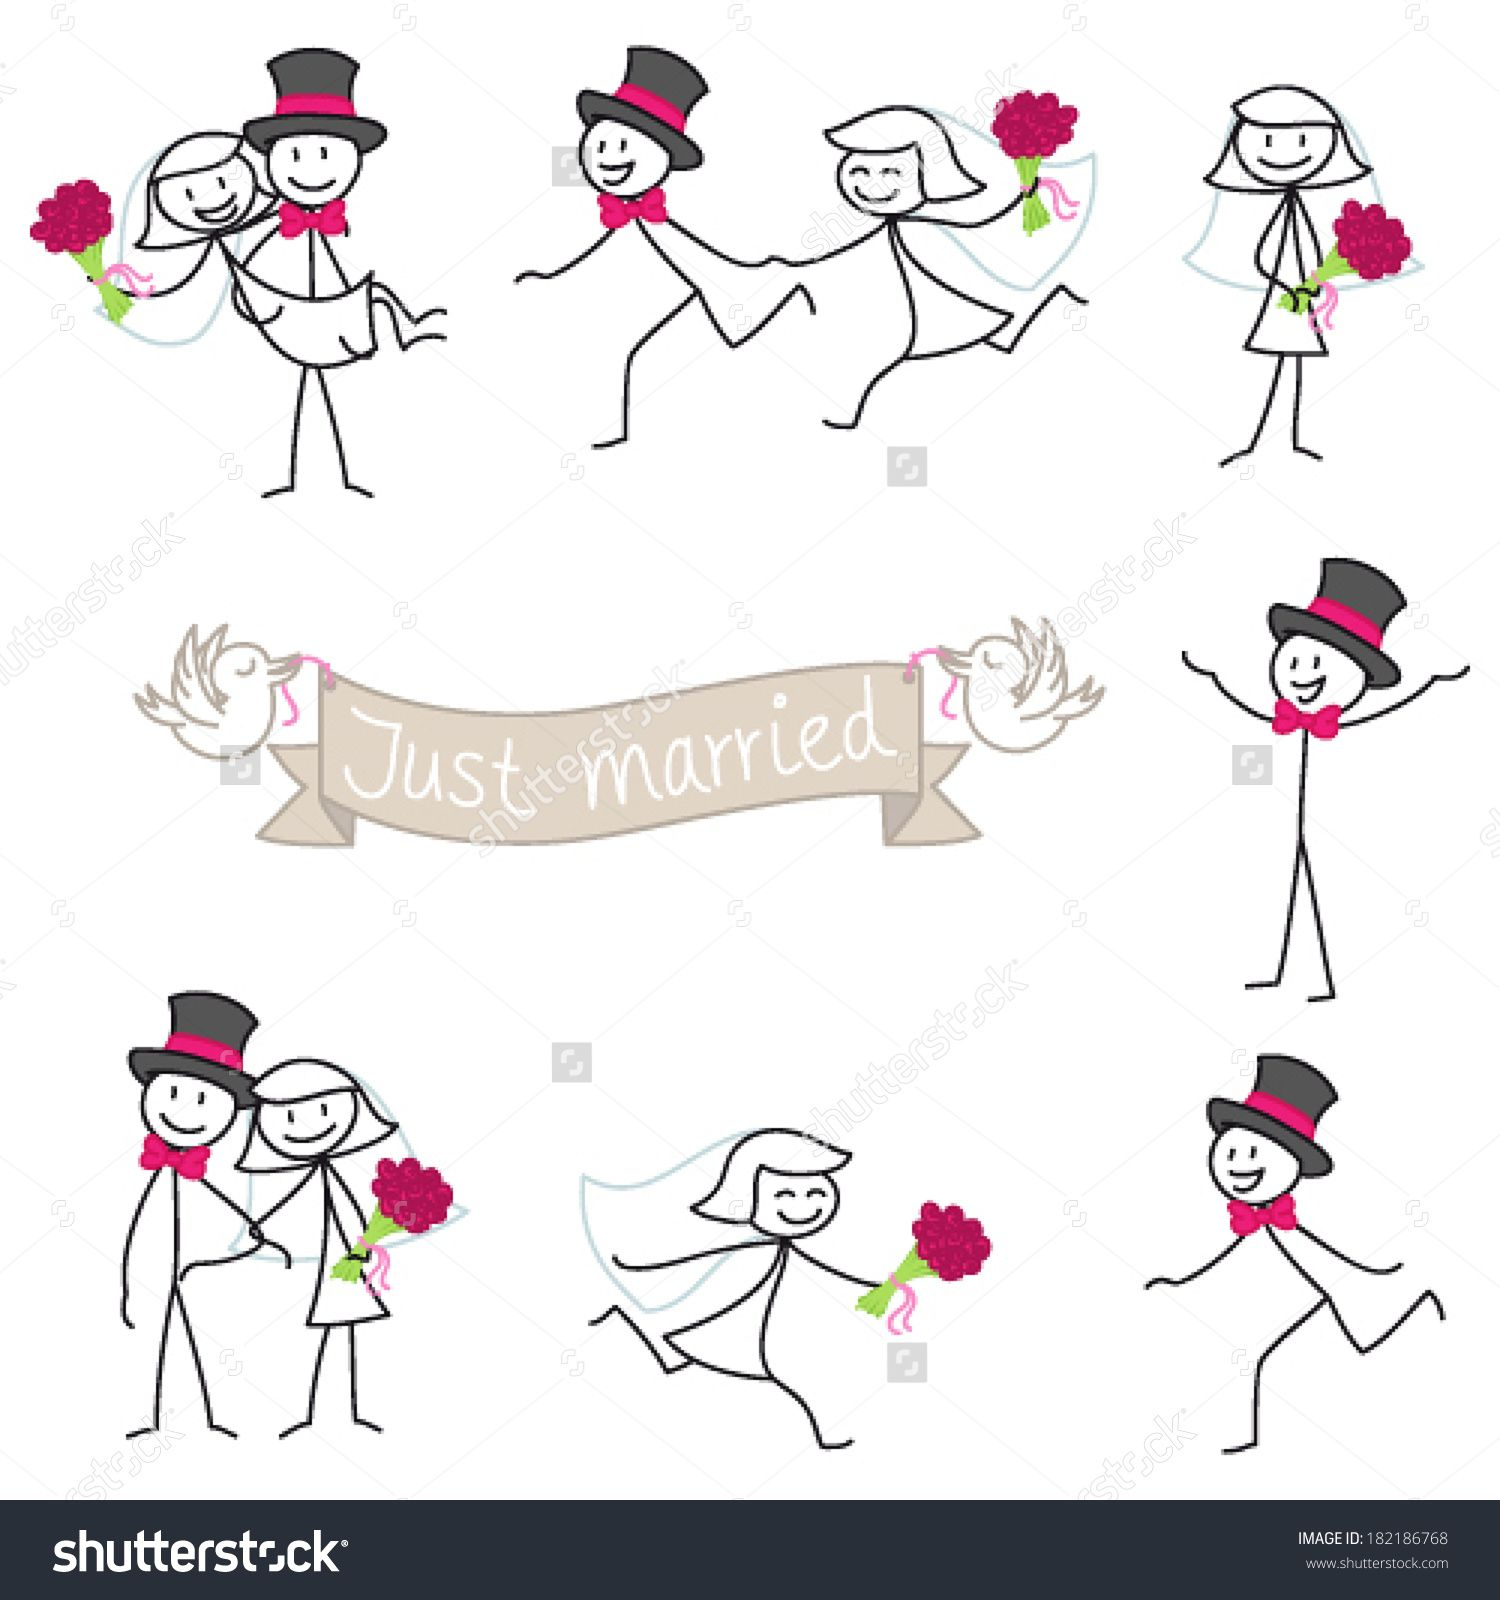 Awesome wedding stick figures clip art | Certificate templates ...